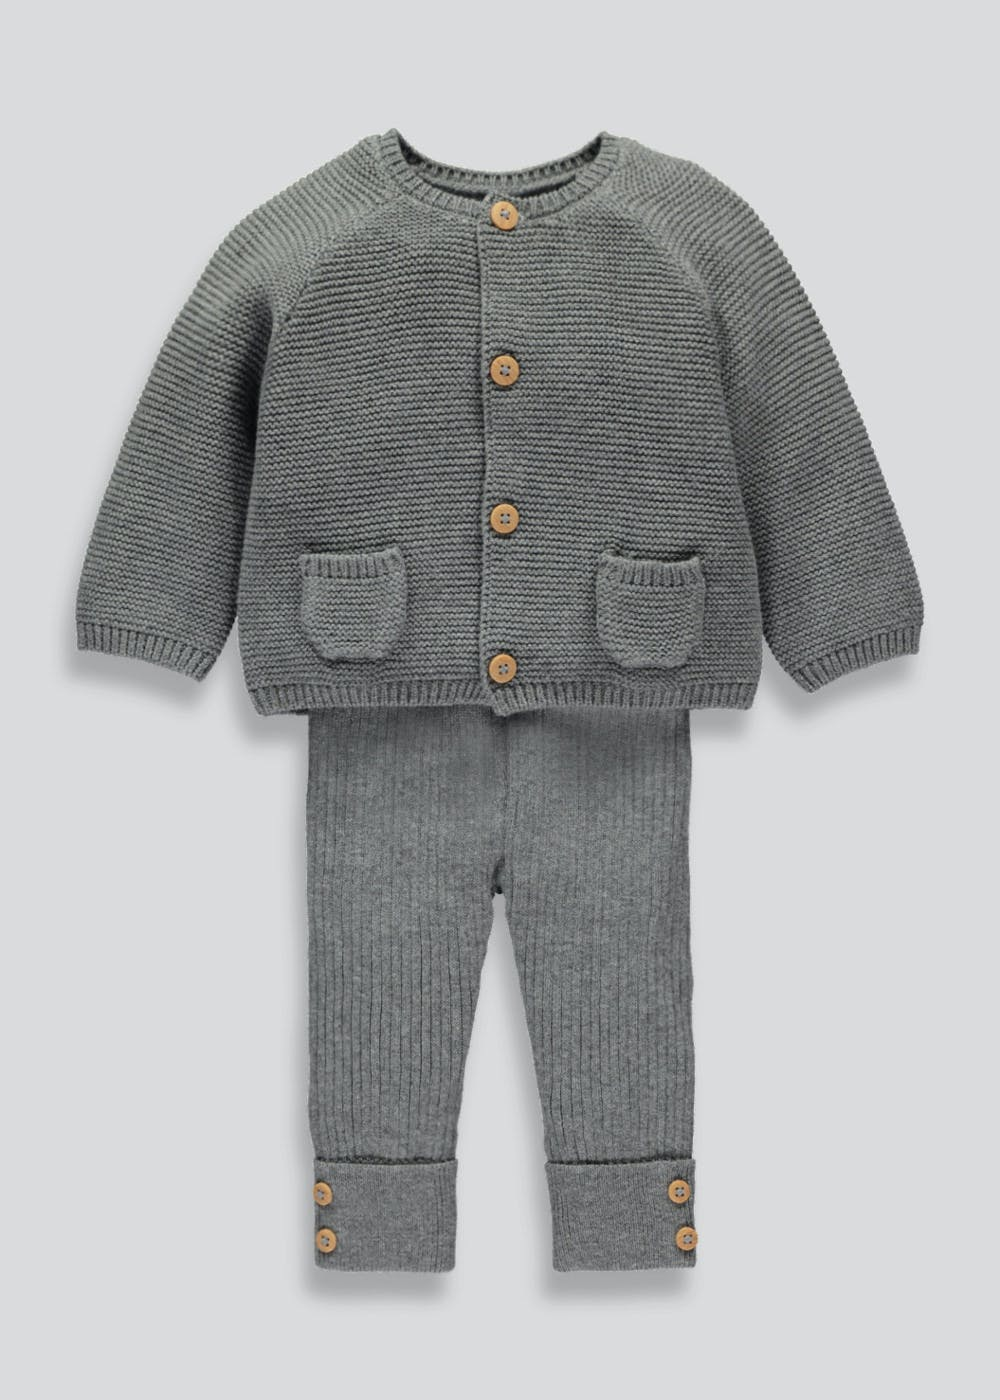 a8af65a90423 Unisex Knitted Cardigan   Leggings Set (Tiny Baby-18mths) – – Matalan